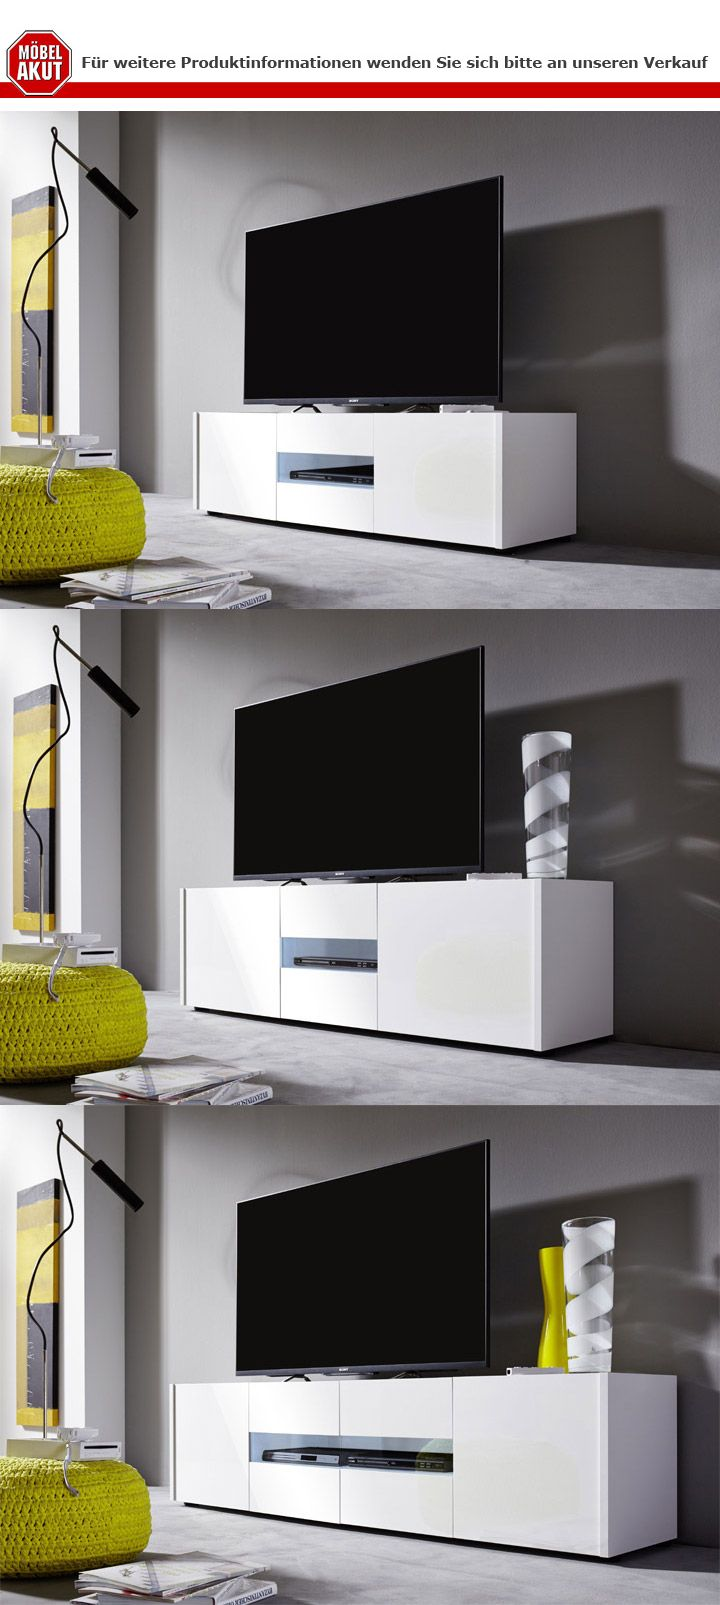 lowboard imola unterschrank tv unterteil wei hochglanz lack 150 cm ebay. Black Bedroom Furniture Sets. Home Design Ideas